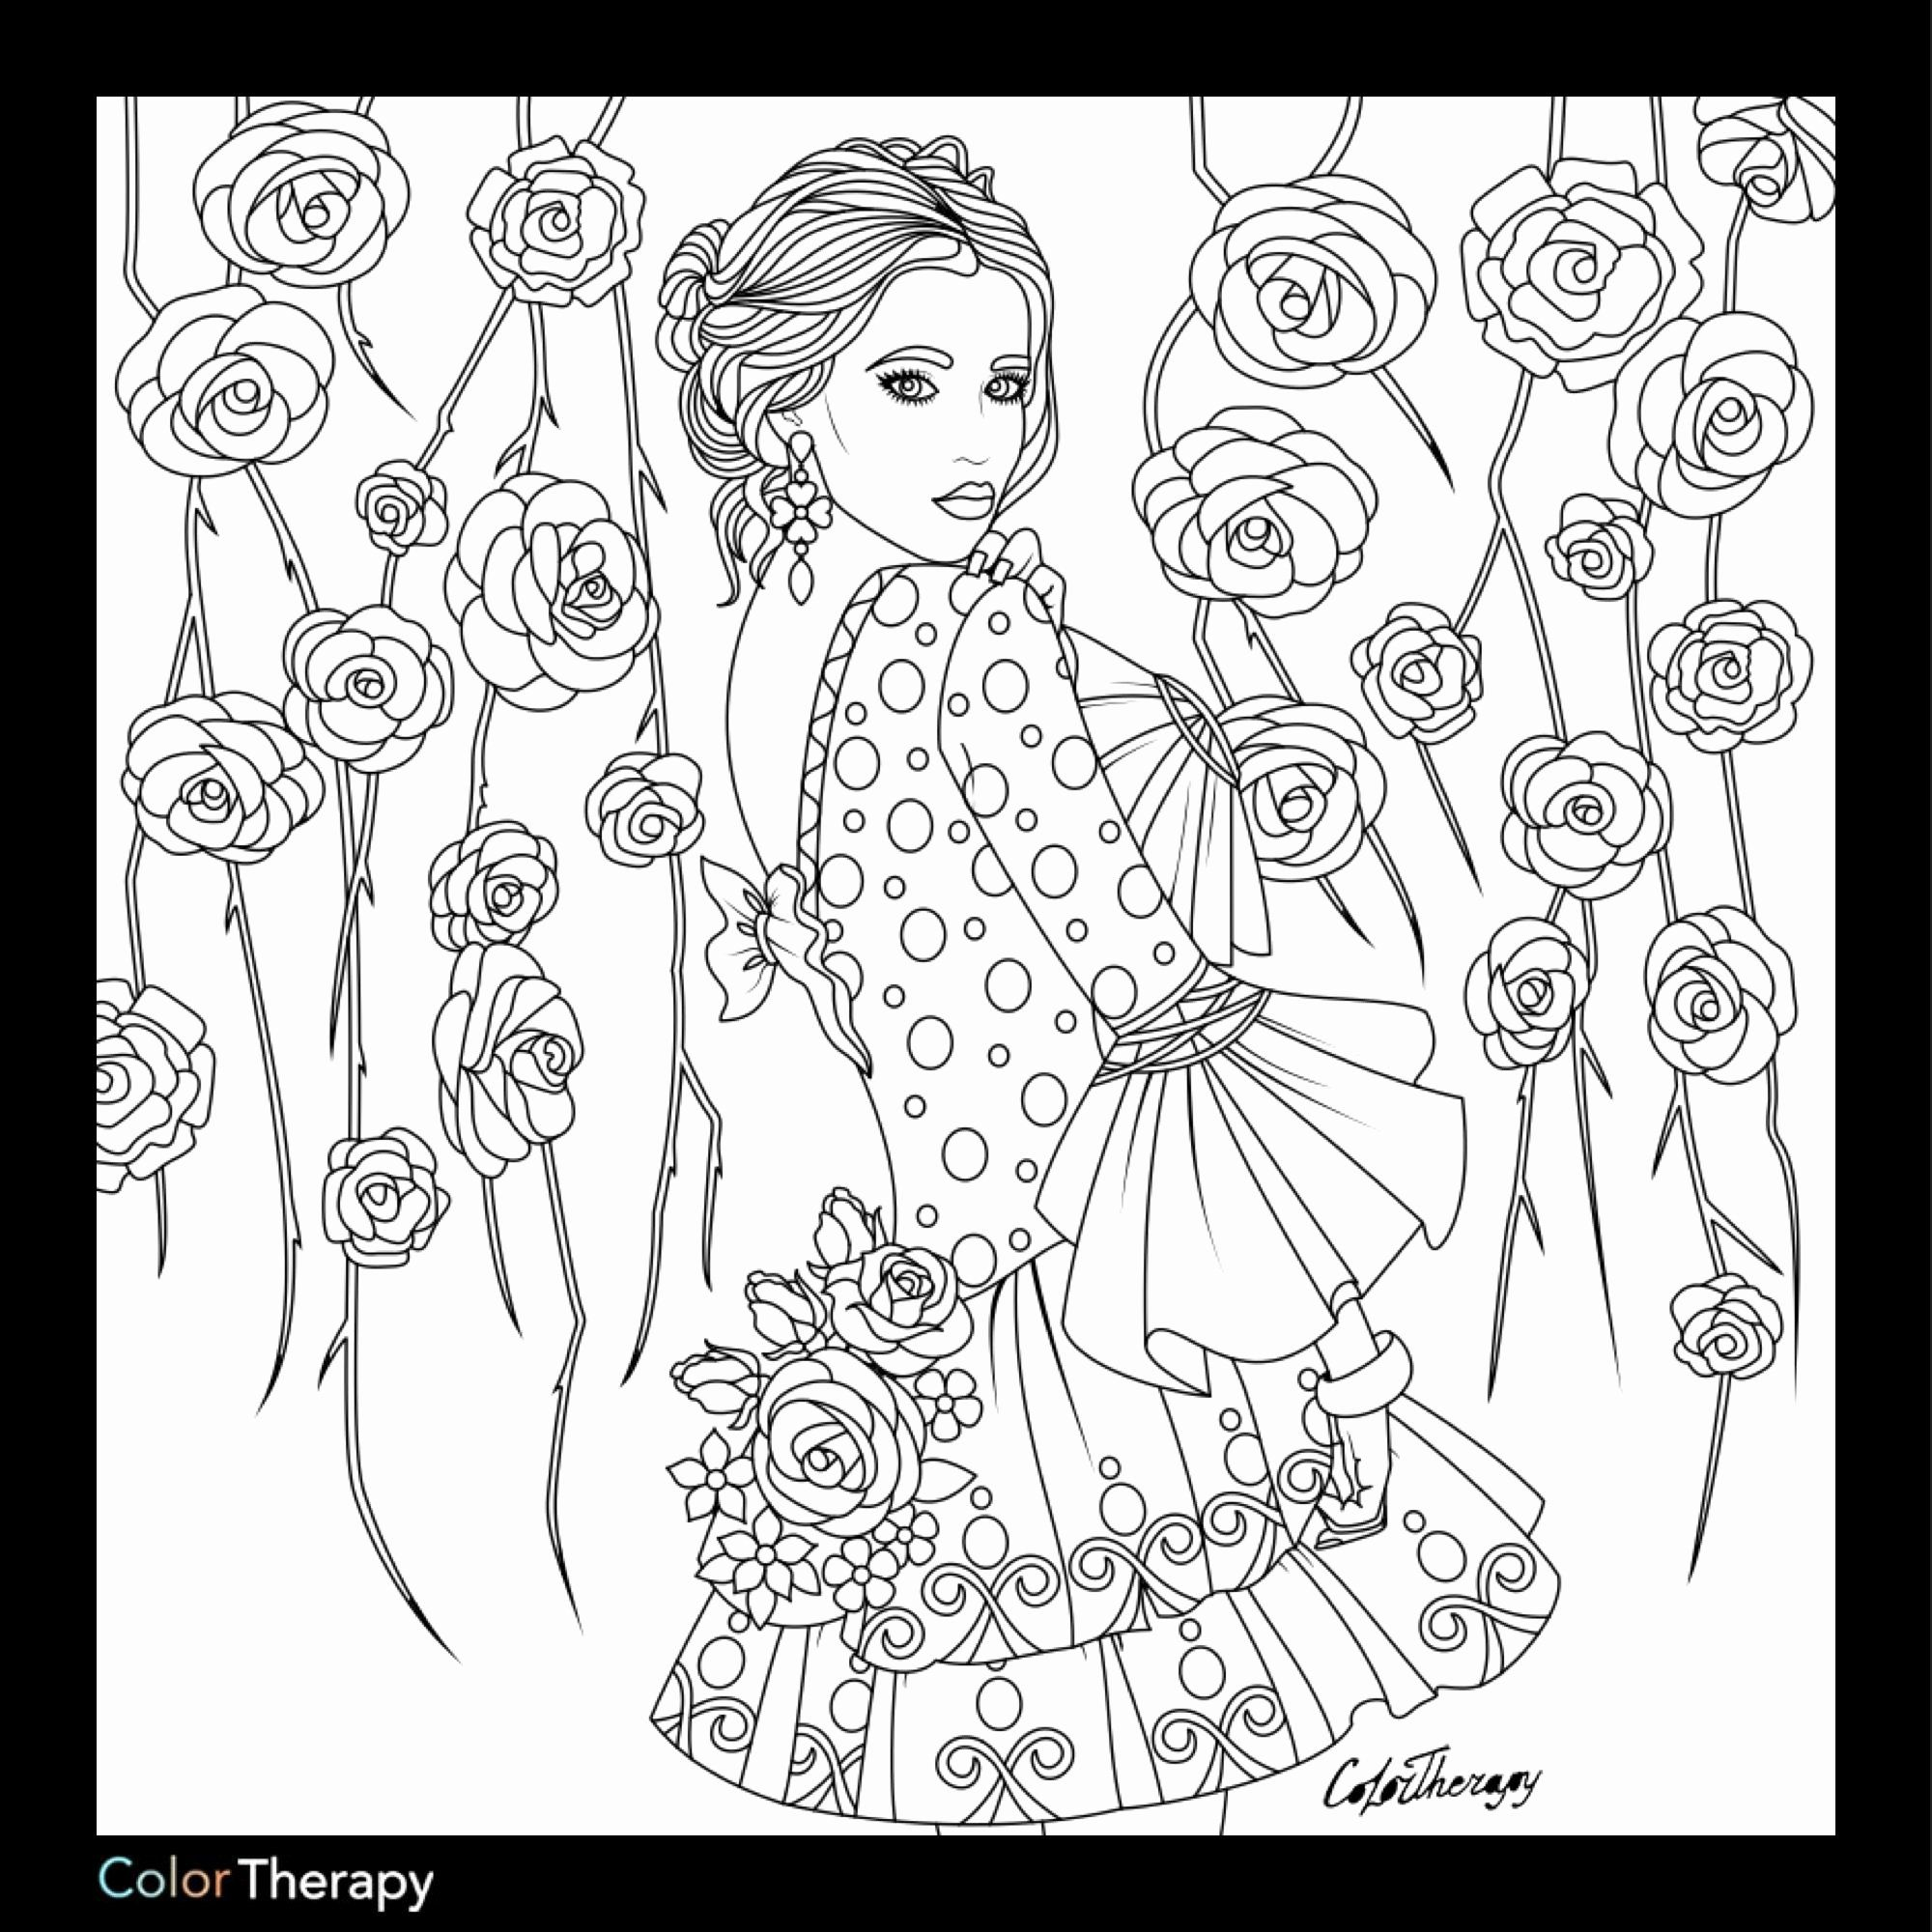 Creative Therapy Coloring Books Inspirational Pin By Coloring Pages For Adults On Coloring Pages For Adul Coloring Books Fairy Coloring Pages Coloring Book Art